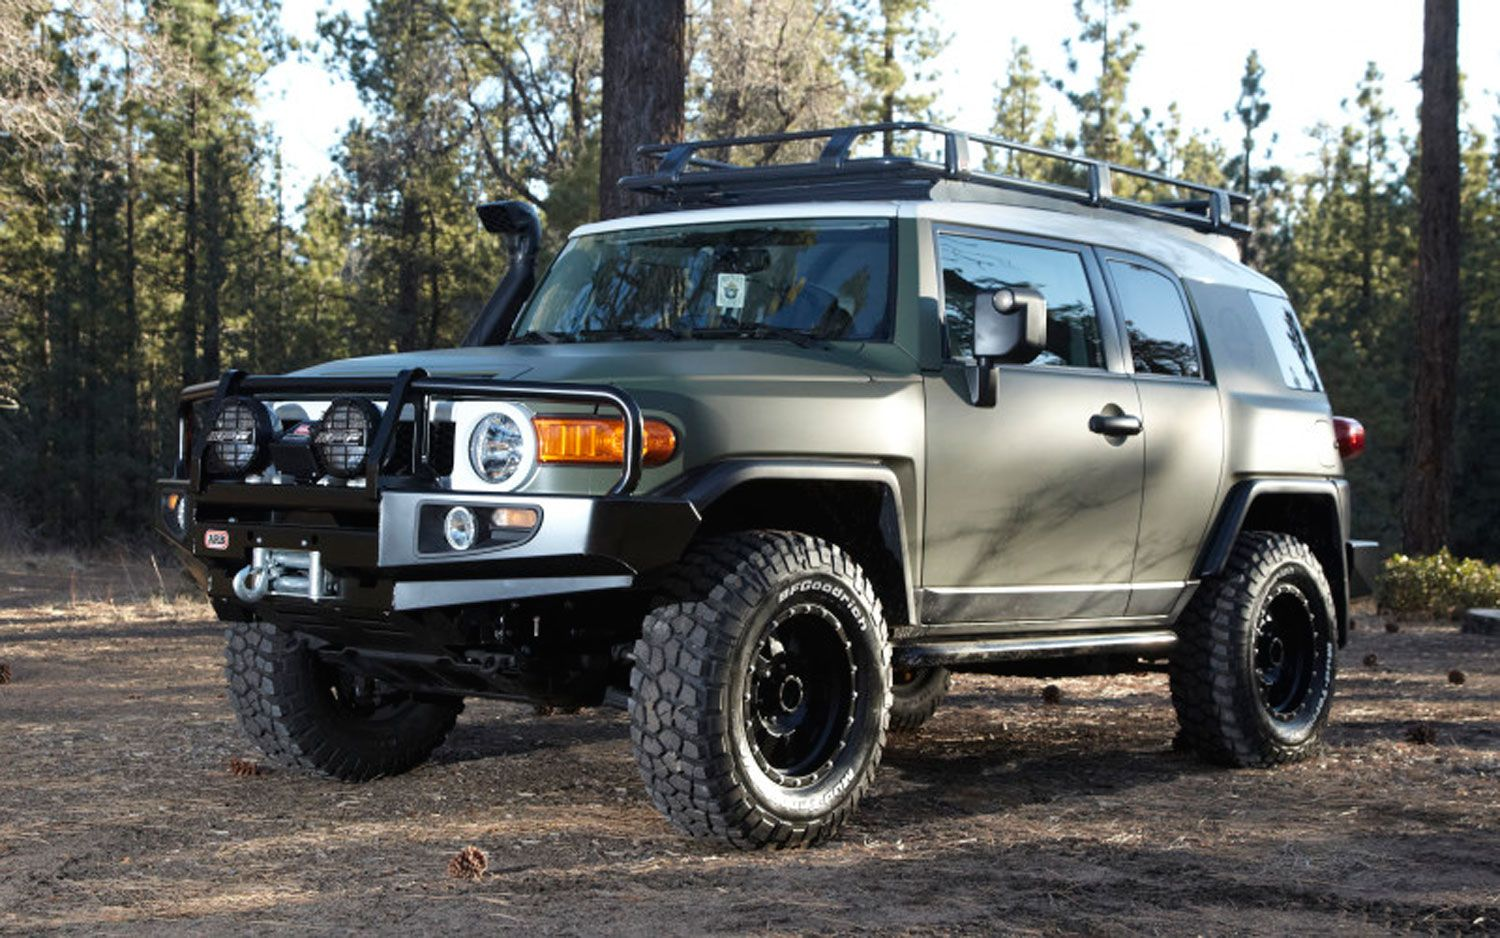 The new 2012 toyota fj cruiser is one of the off road beasts this year